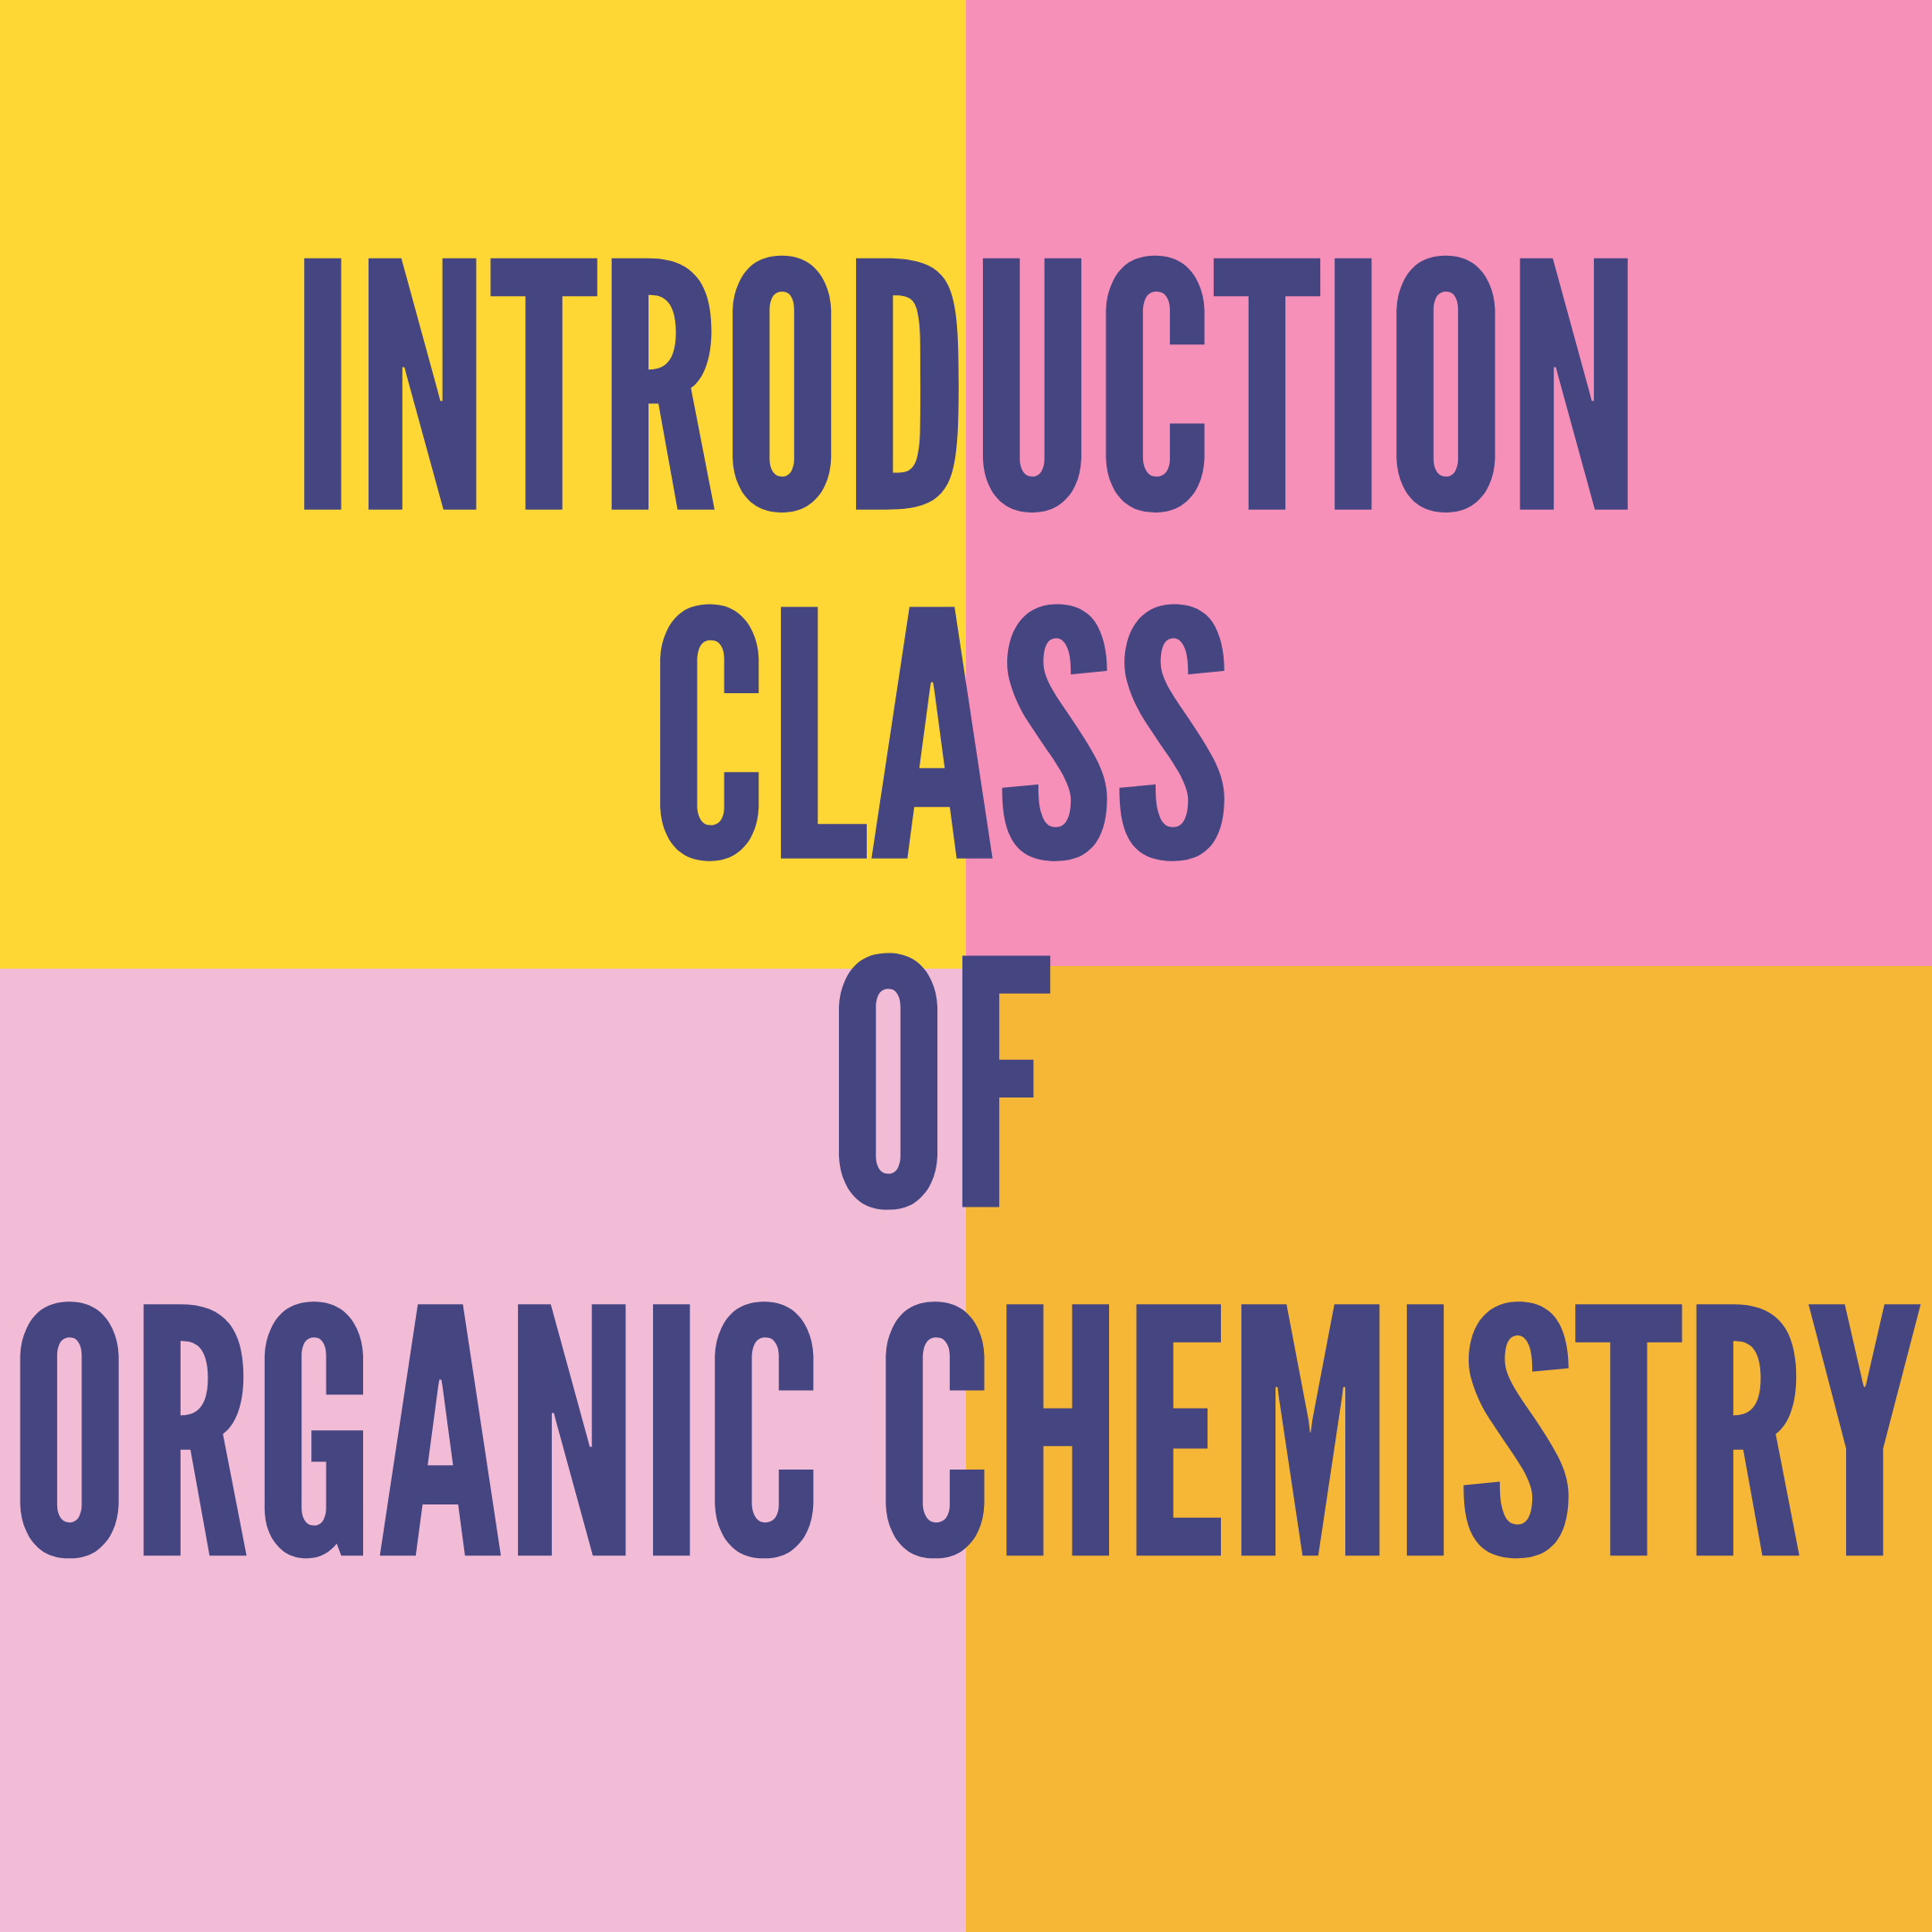 INTRODUCTION CLASS OF ORGANIC CHEMISTRY